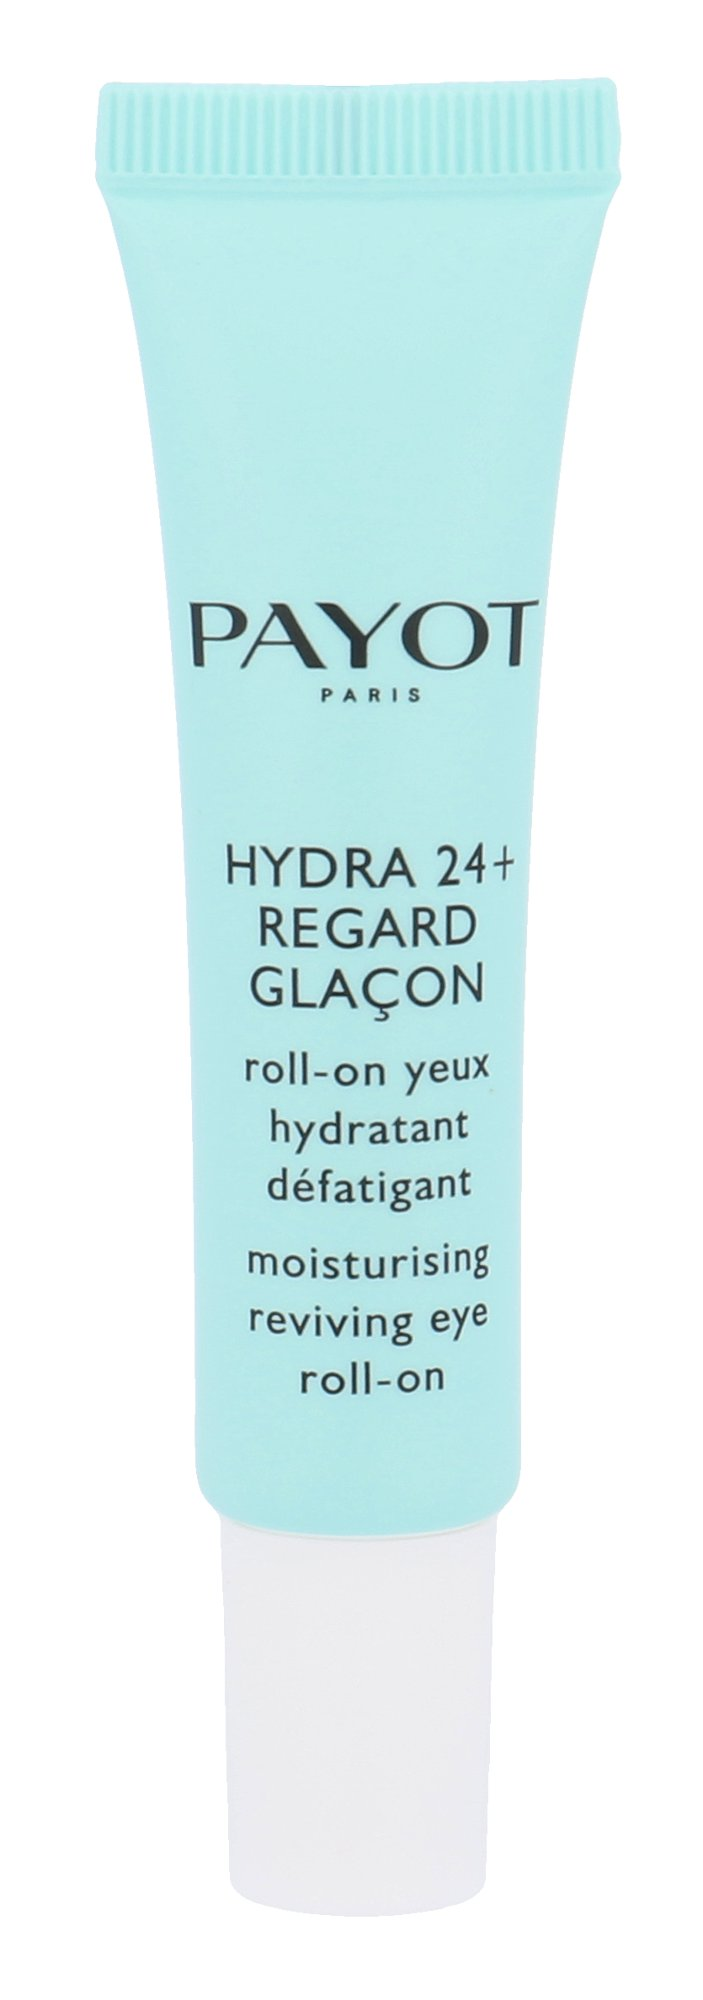 PAYOT Hydra 24+ Moisturising Reviving Eyes Roll On, Očný gél 15ml